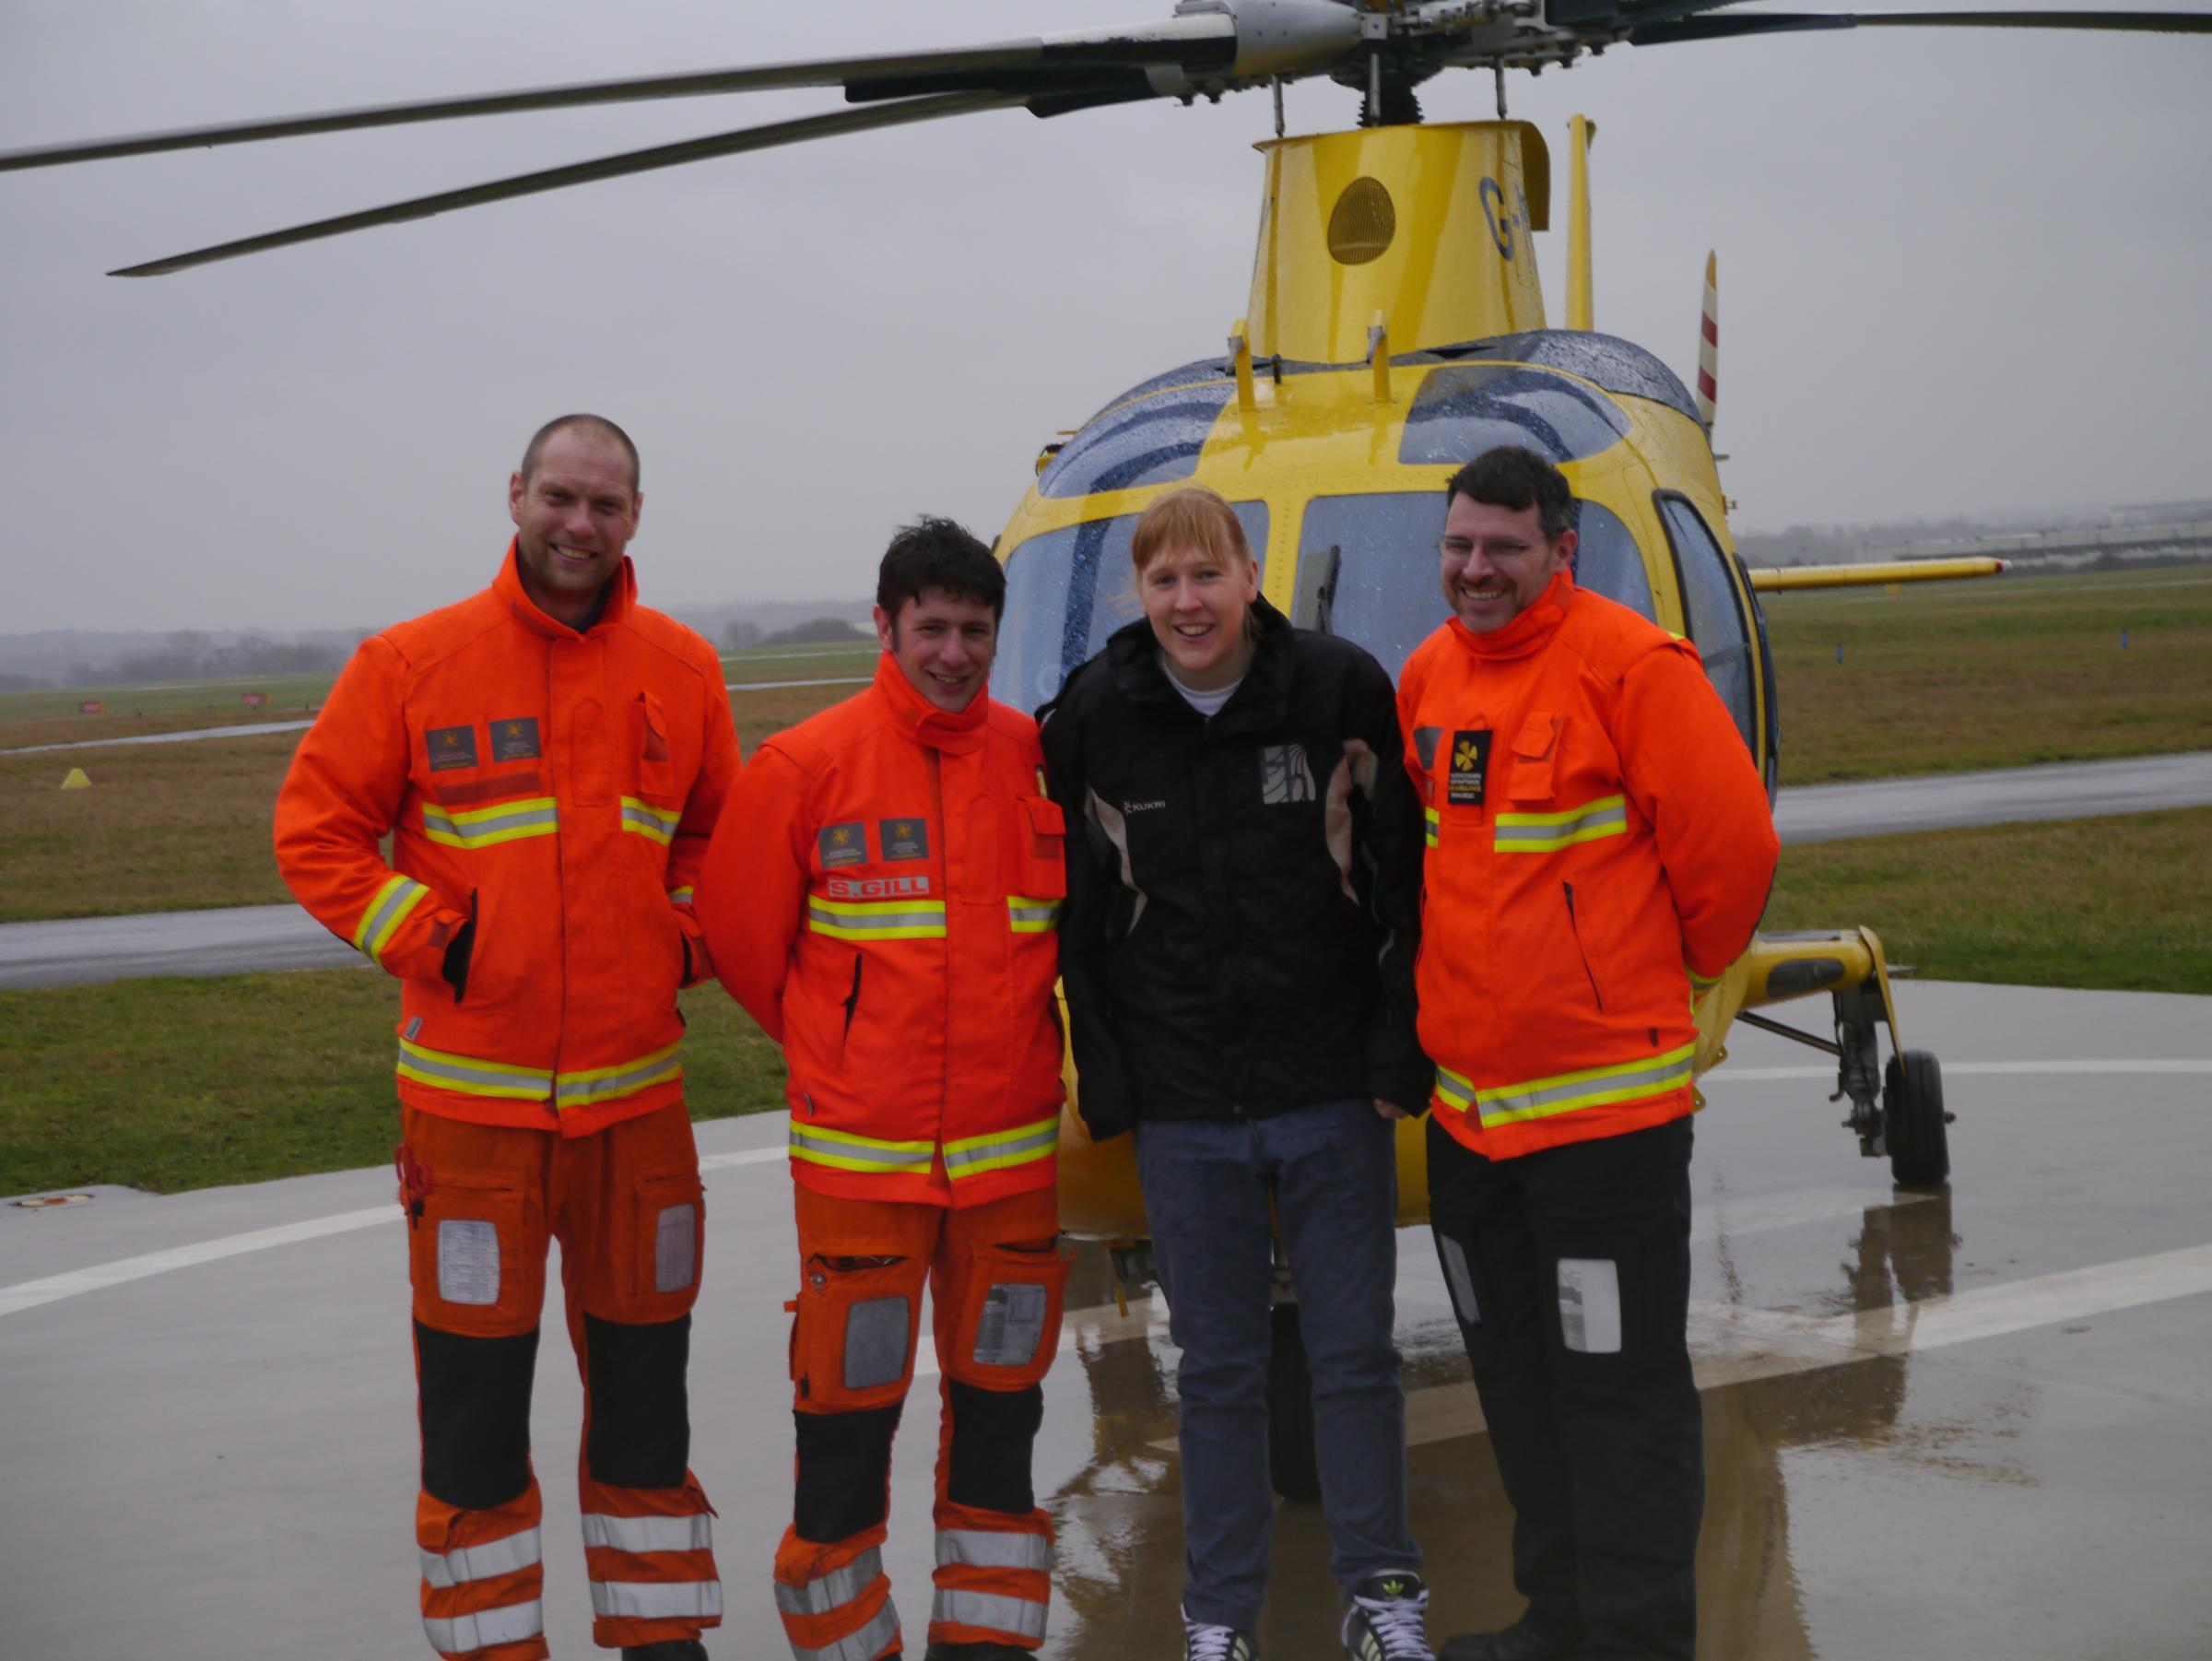 From l-r: pilot Joe Moore, doctor Stuart Gill, Lucy Dawkins and paramedic Paul Mullins.